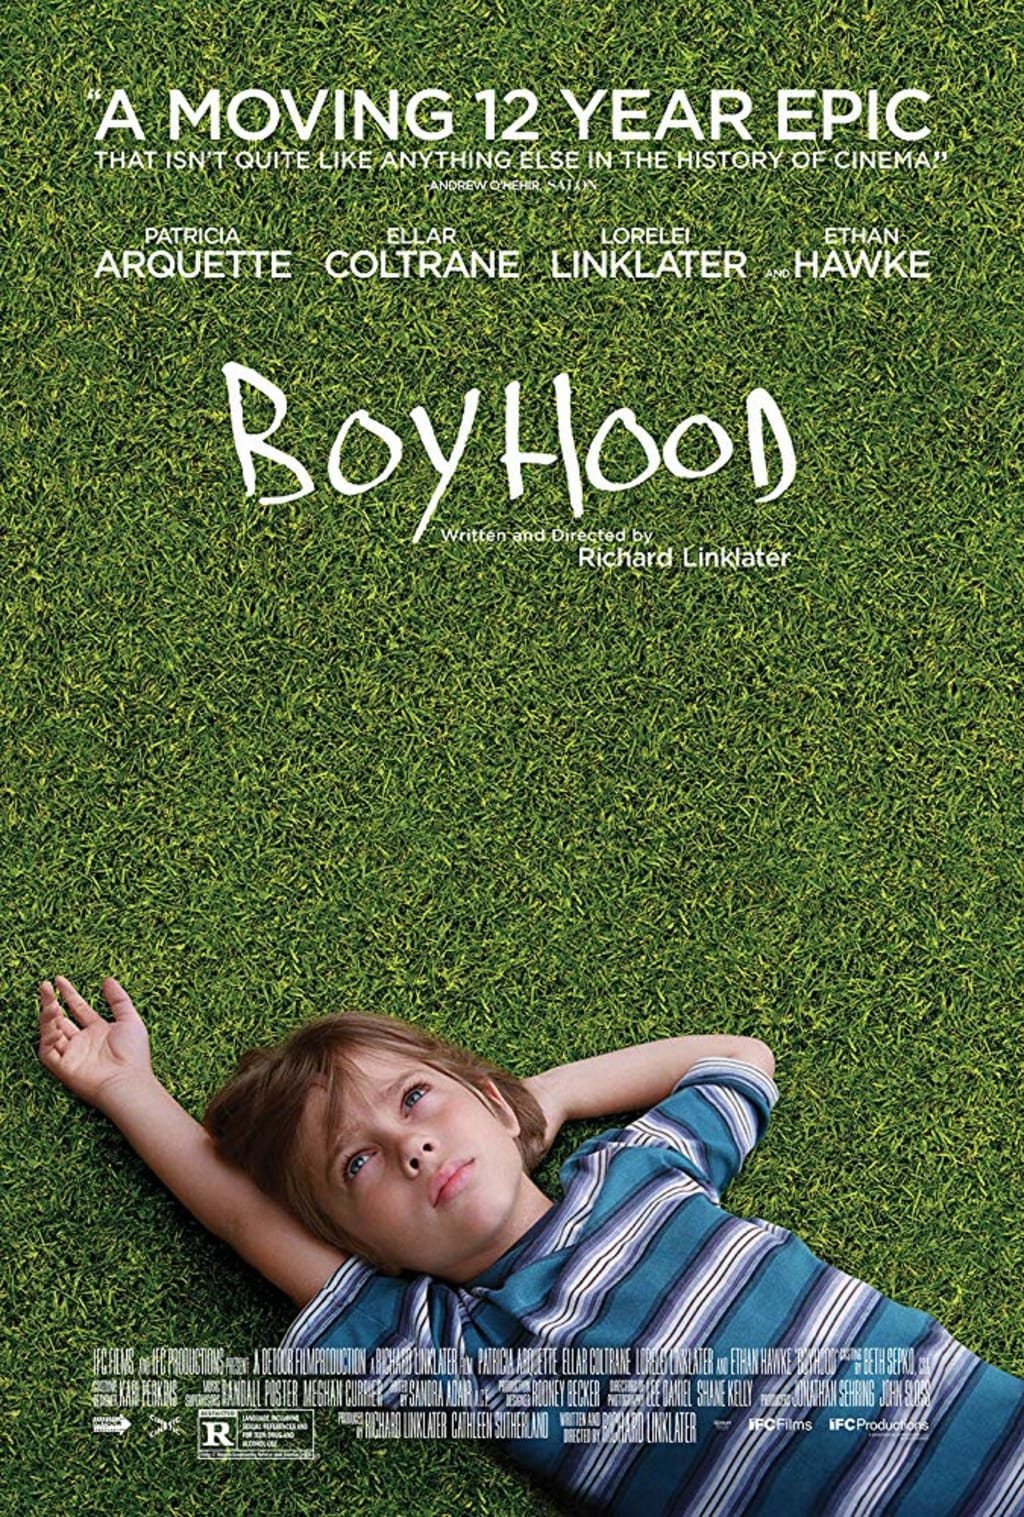 Richard Linklater's Boyhood is such a Drag